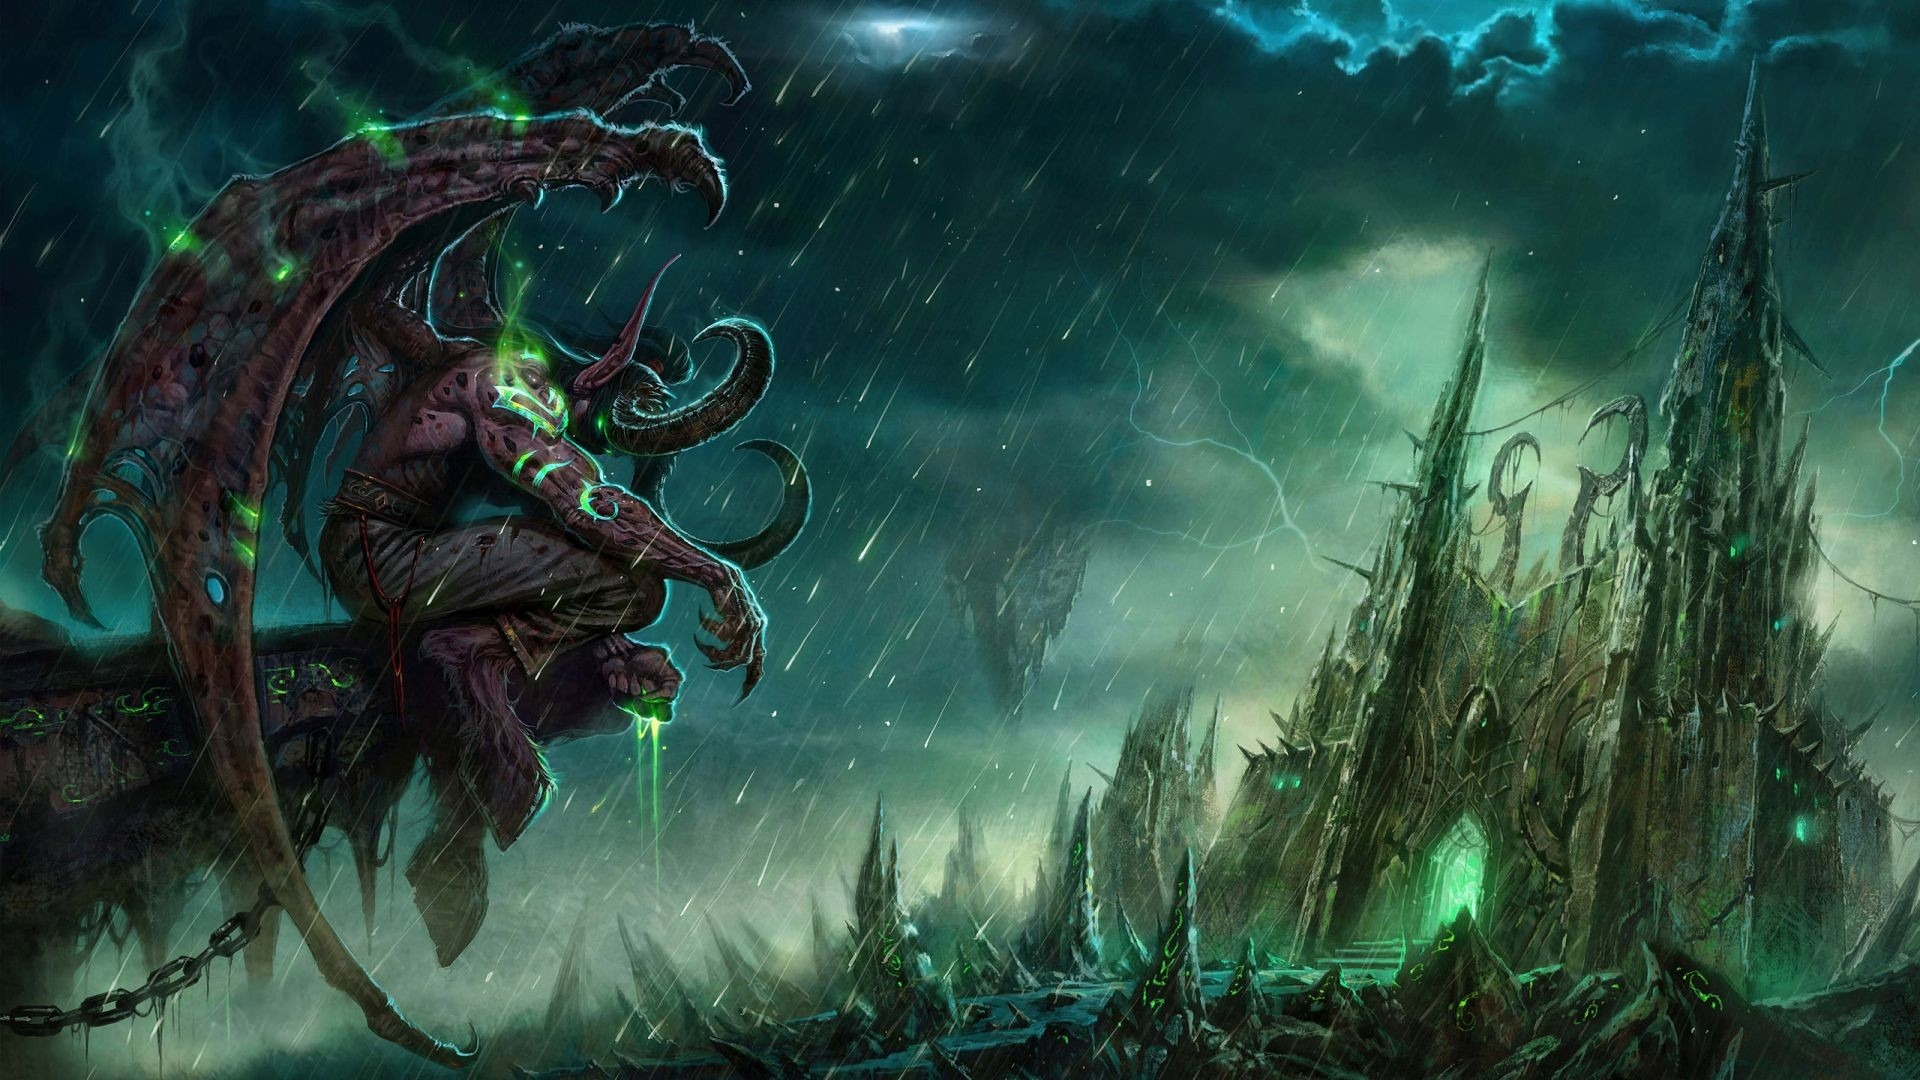 wallpaper world of warcraft hd gratuit à télécharger sur ngn mag